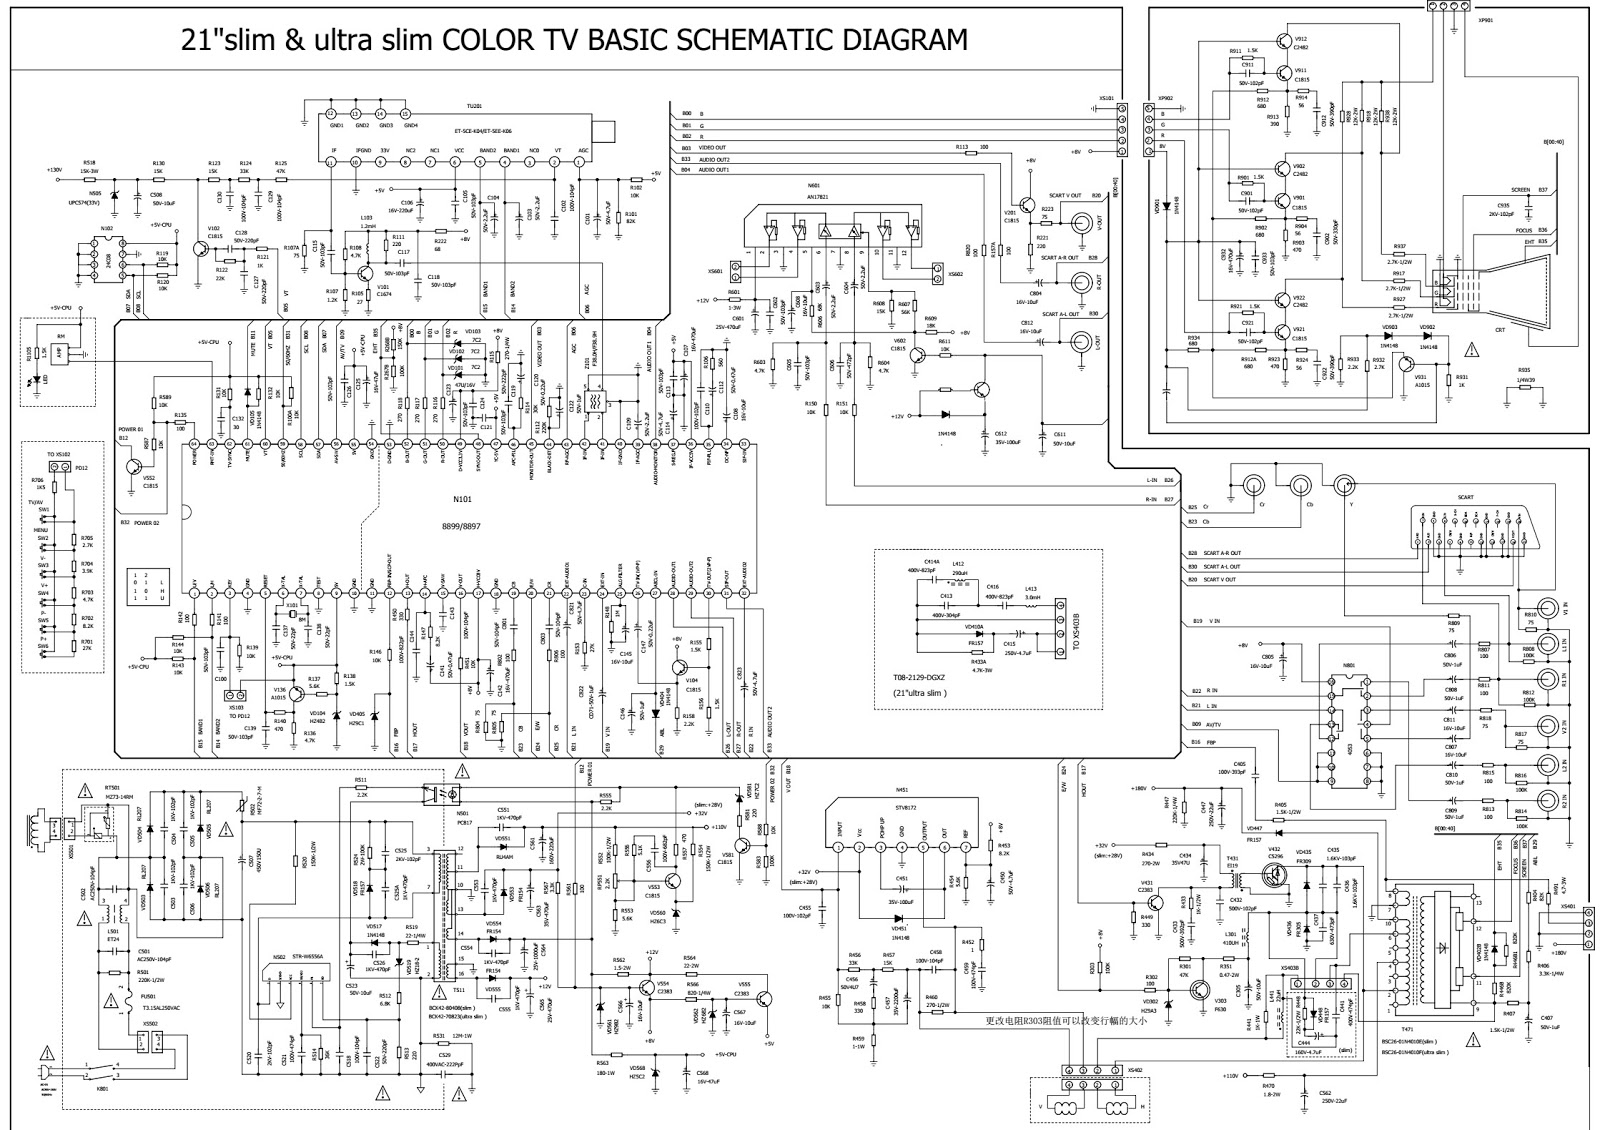 21%2Binch%2BSlim%2Band%2BUltra%2Bslim%2BCRT%2BTV%2Bcircuit%2Bdiagram color tv slim and ultra slim type circuit diagram 8899 ic schematic diagram at couponss.co